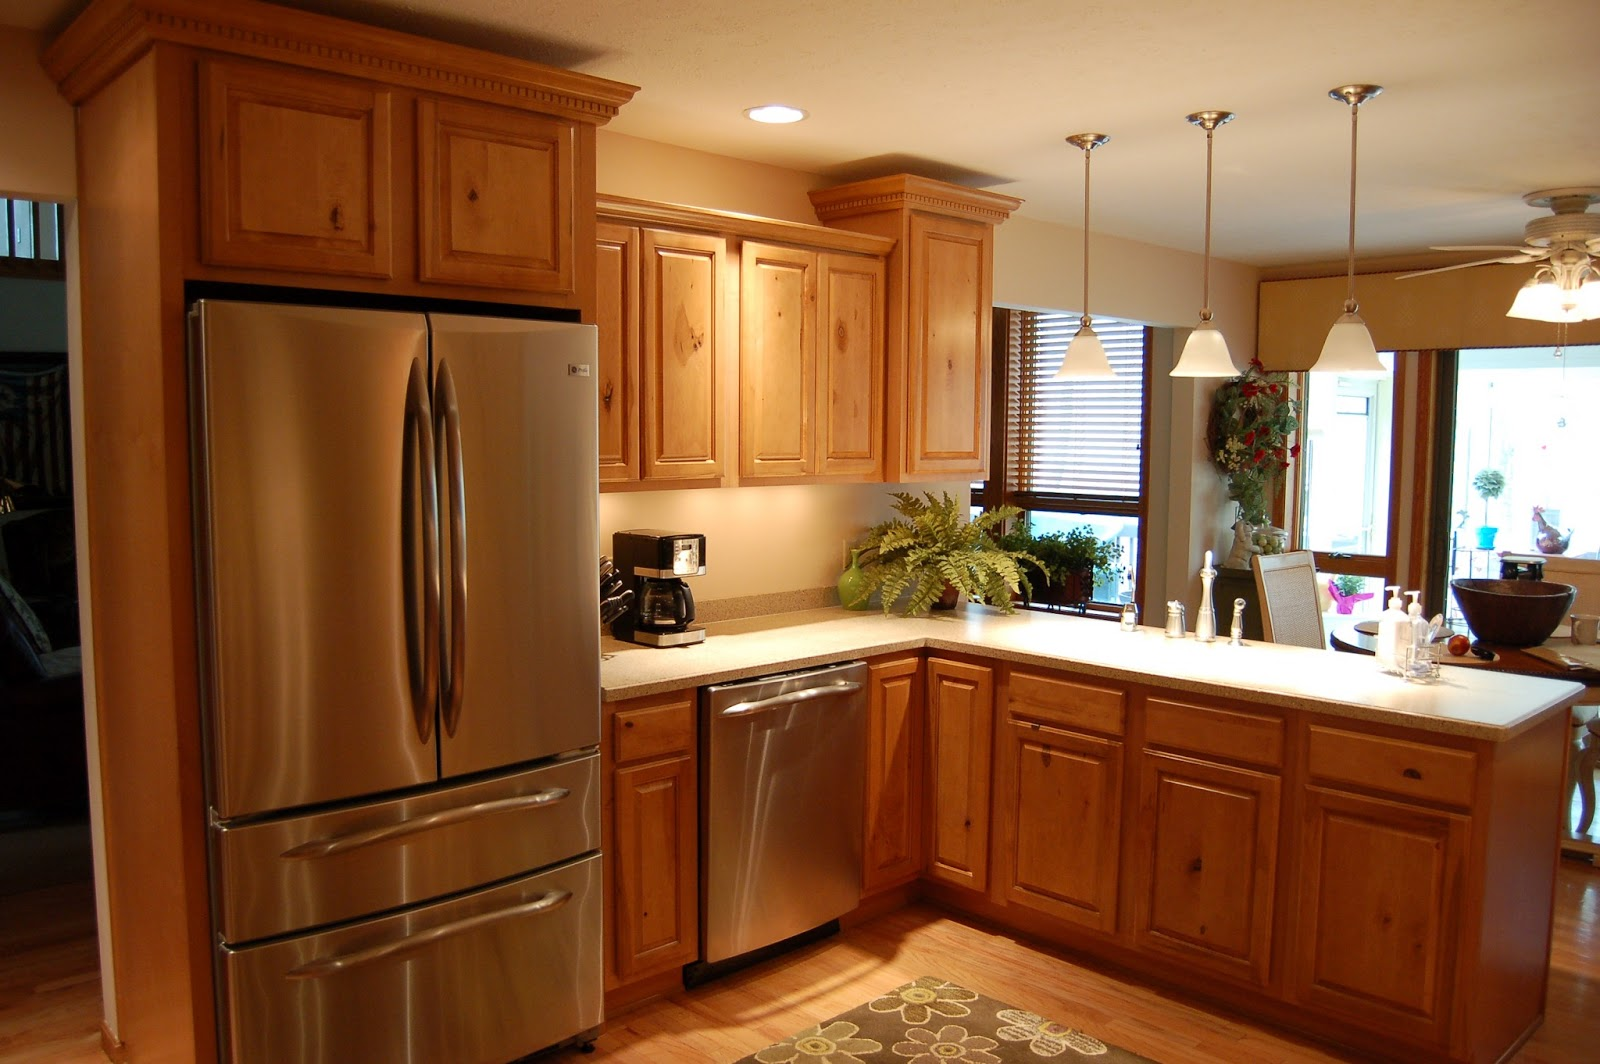 kitchen remodeling whats your style by kitchen remodeling chicago Chicago Kitchen Remodeling ideas